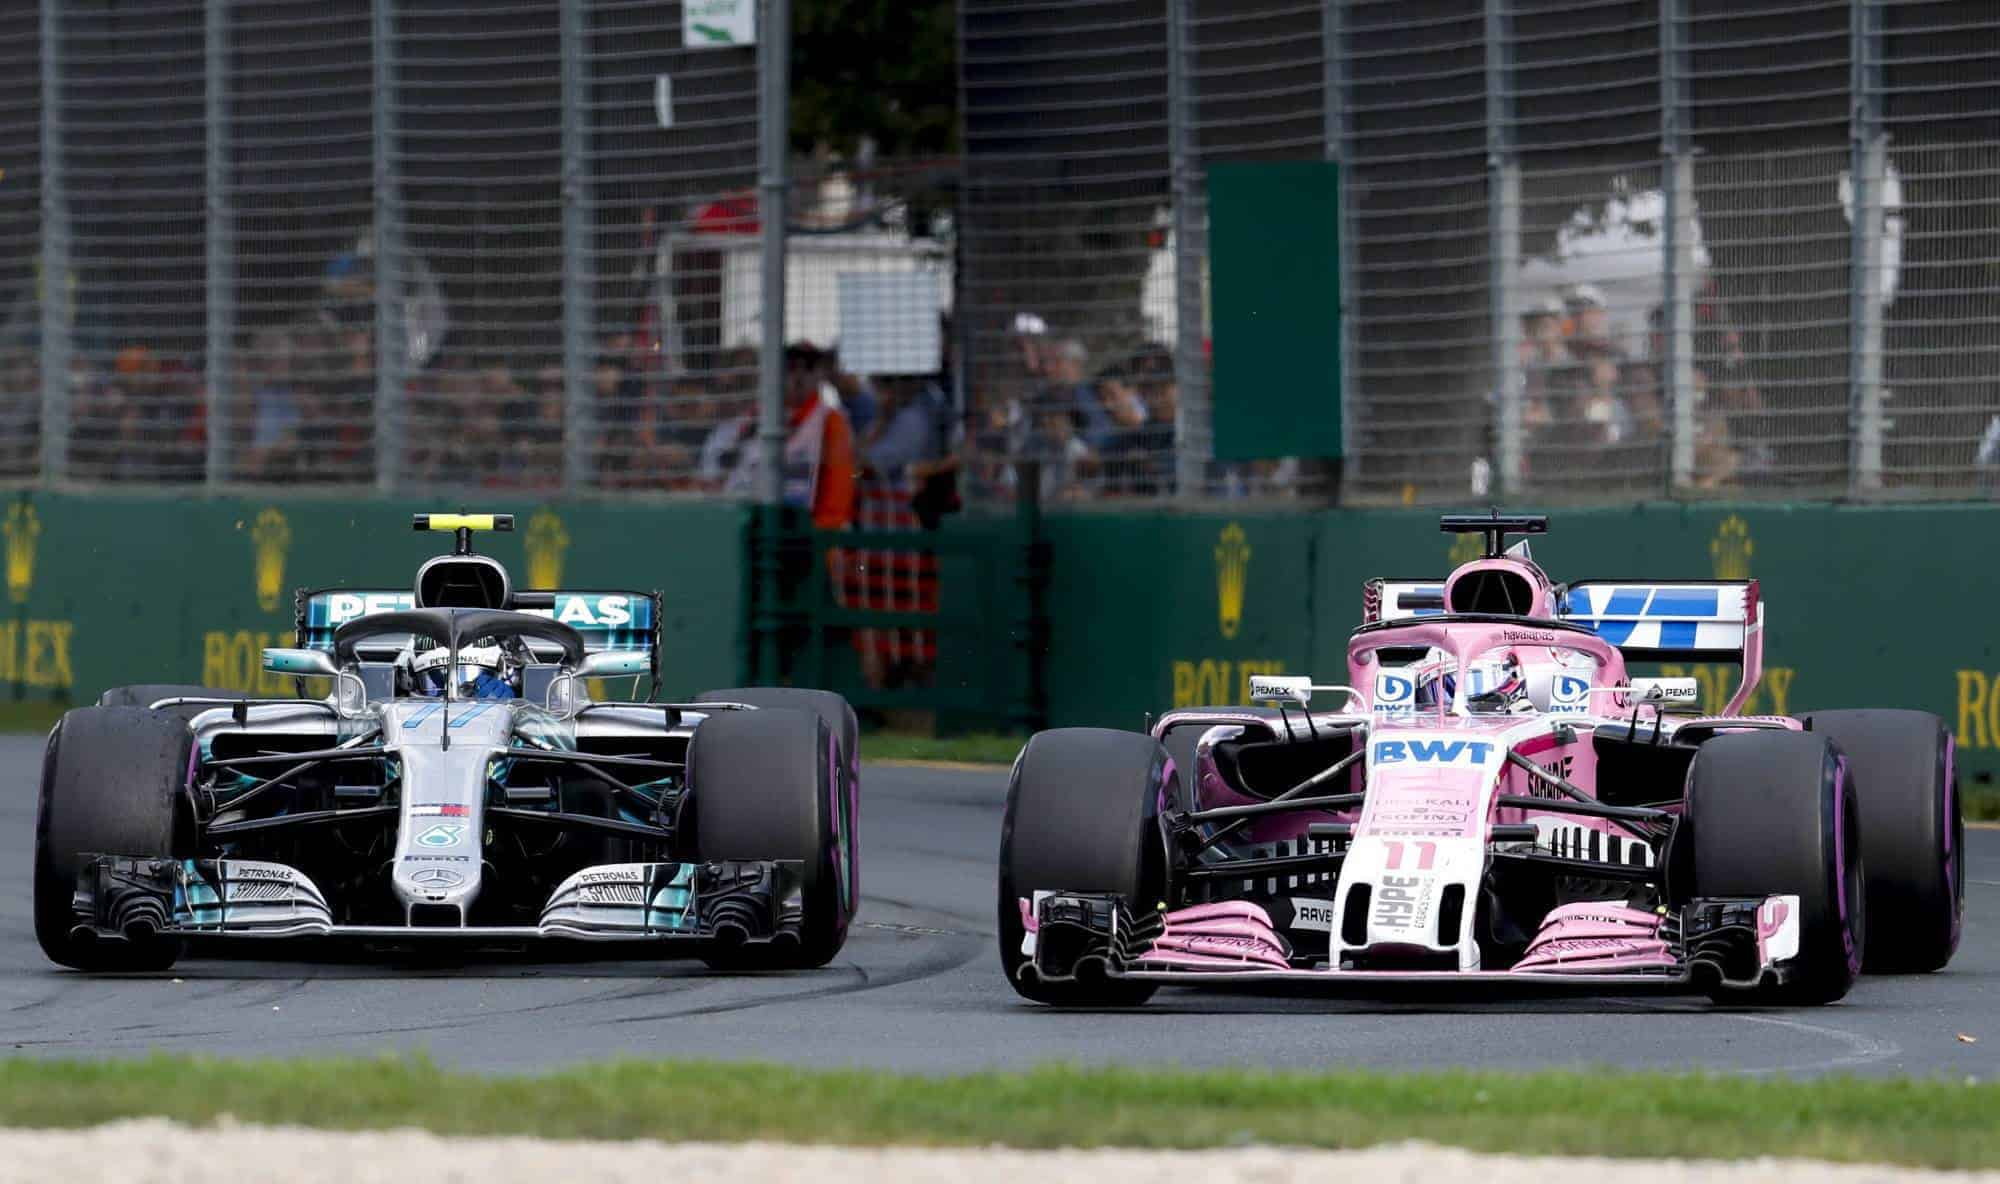 Mercedes Force India Australian GP F1 2018 Photo Daimler